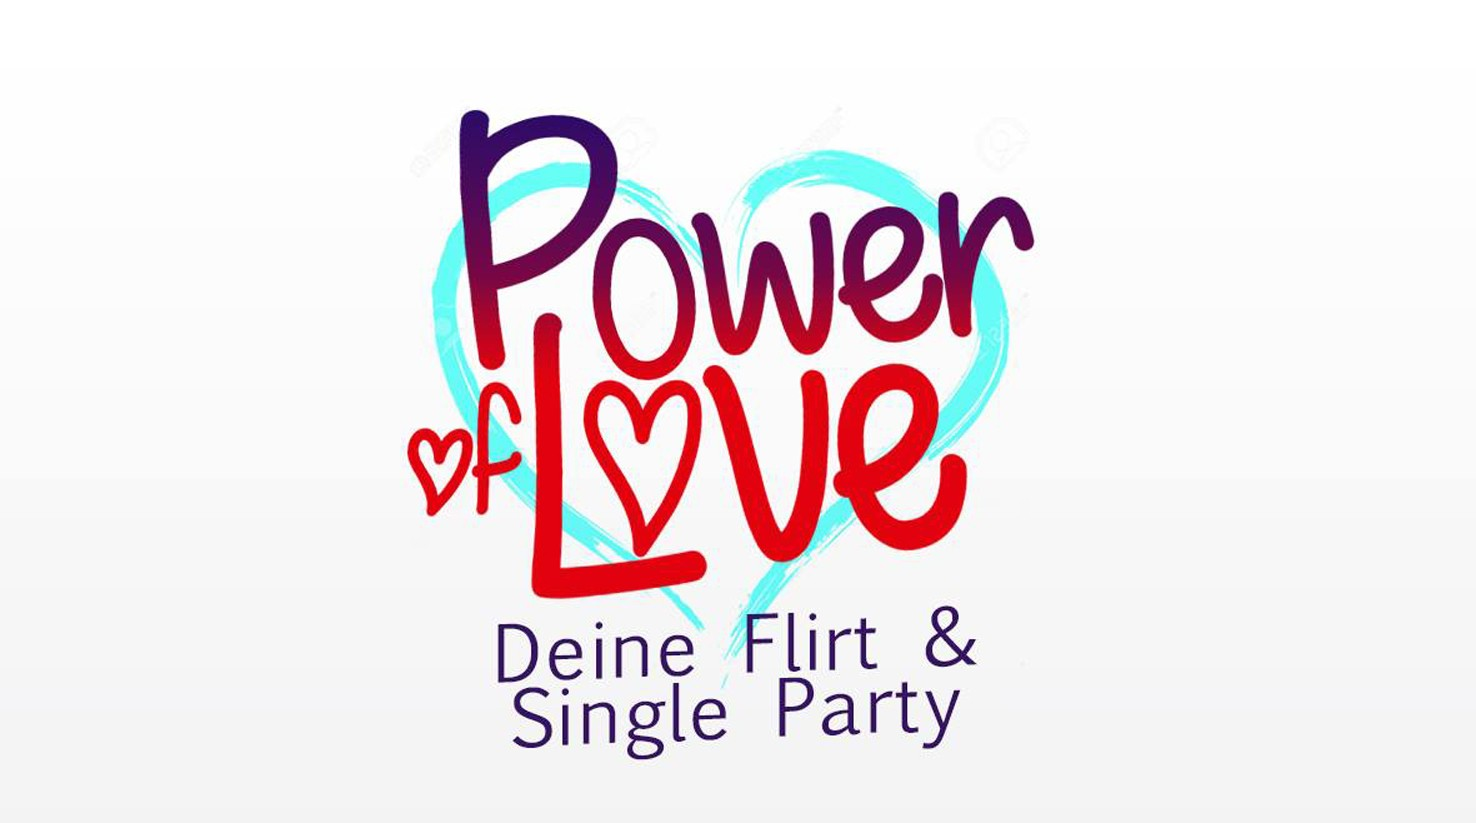 Flirt und Single Party - Power of Love